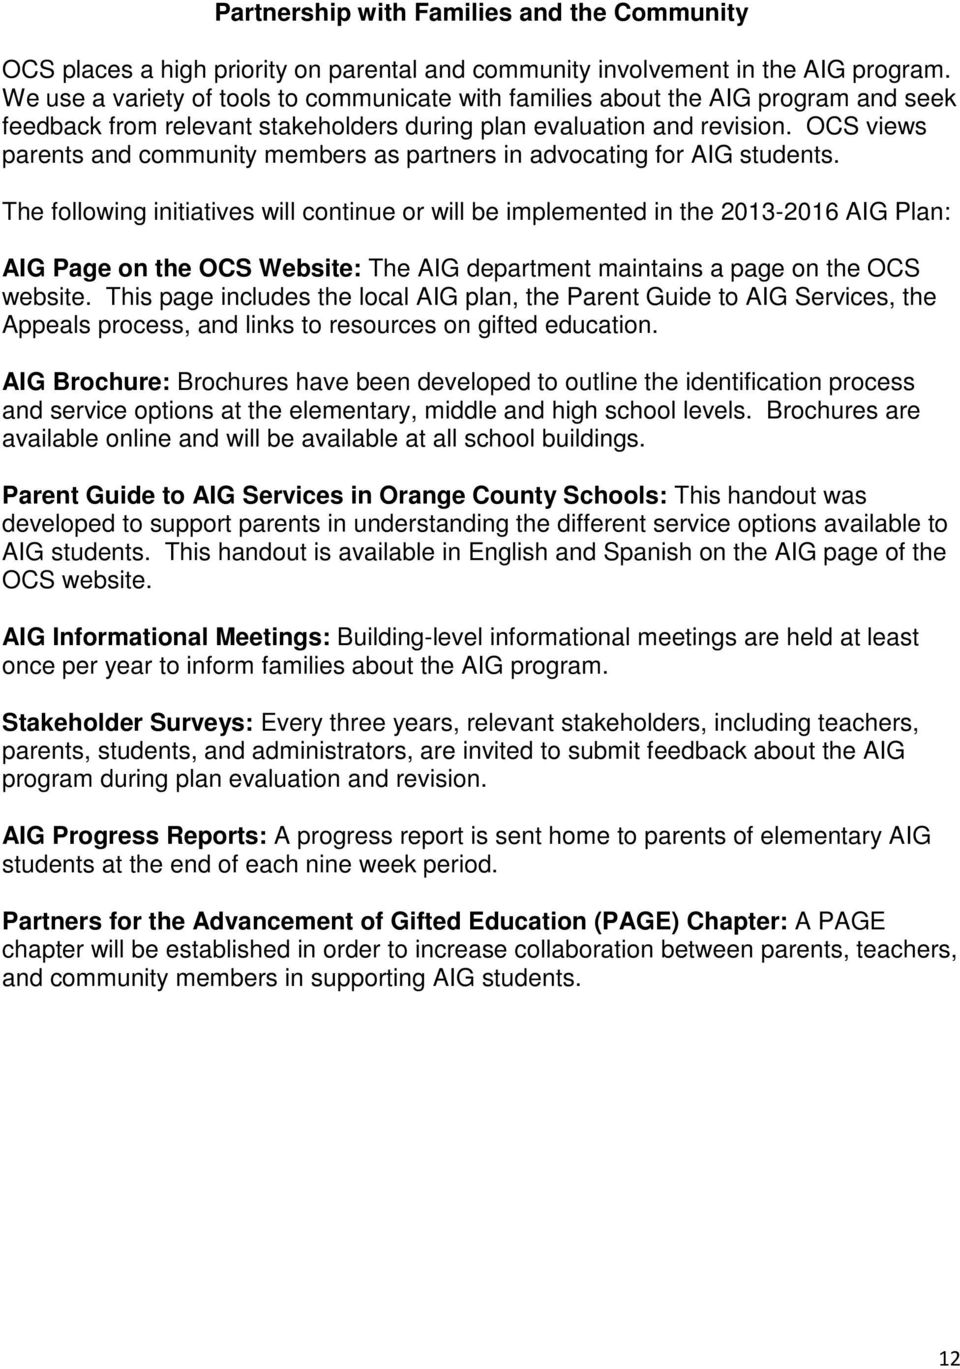 OCS views parents and community members as partners in advocating for AIG students.